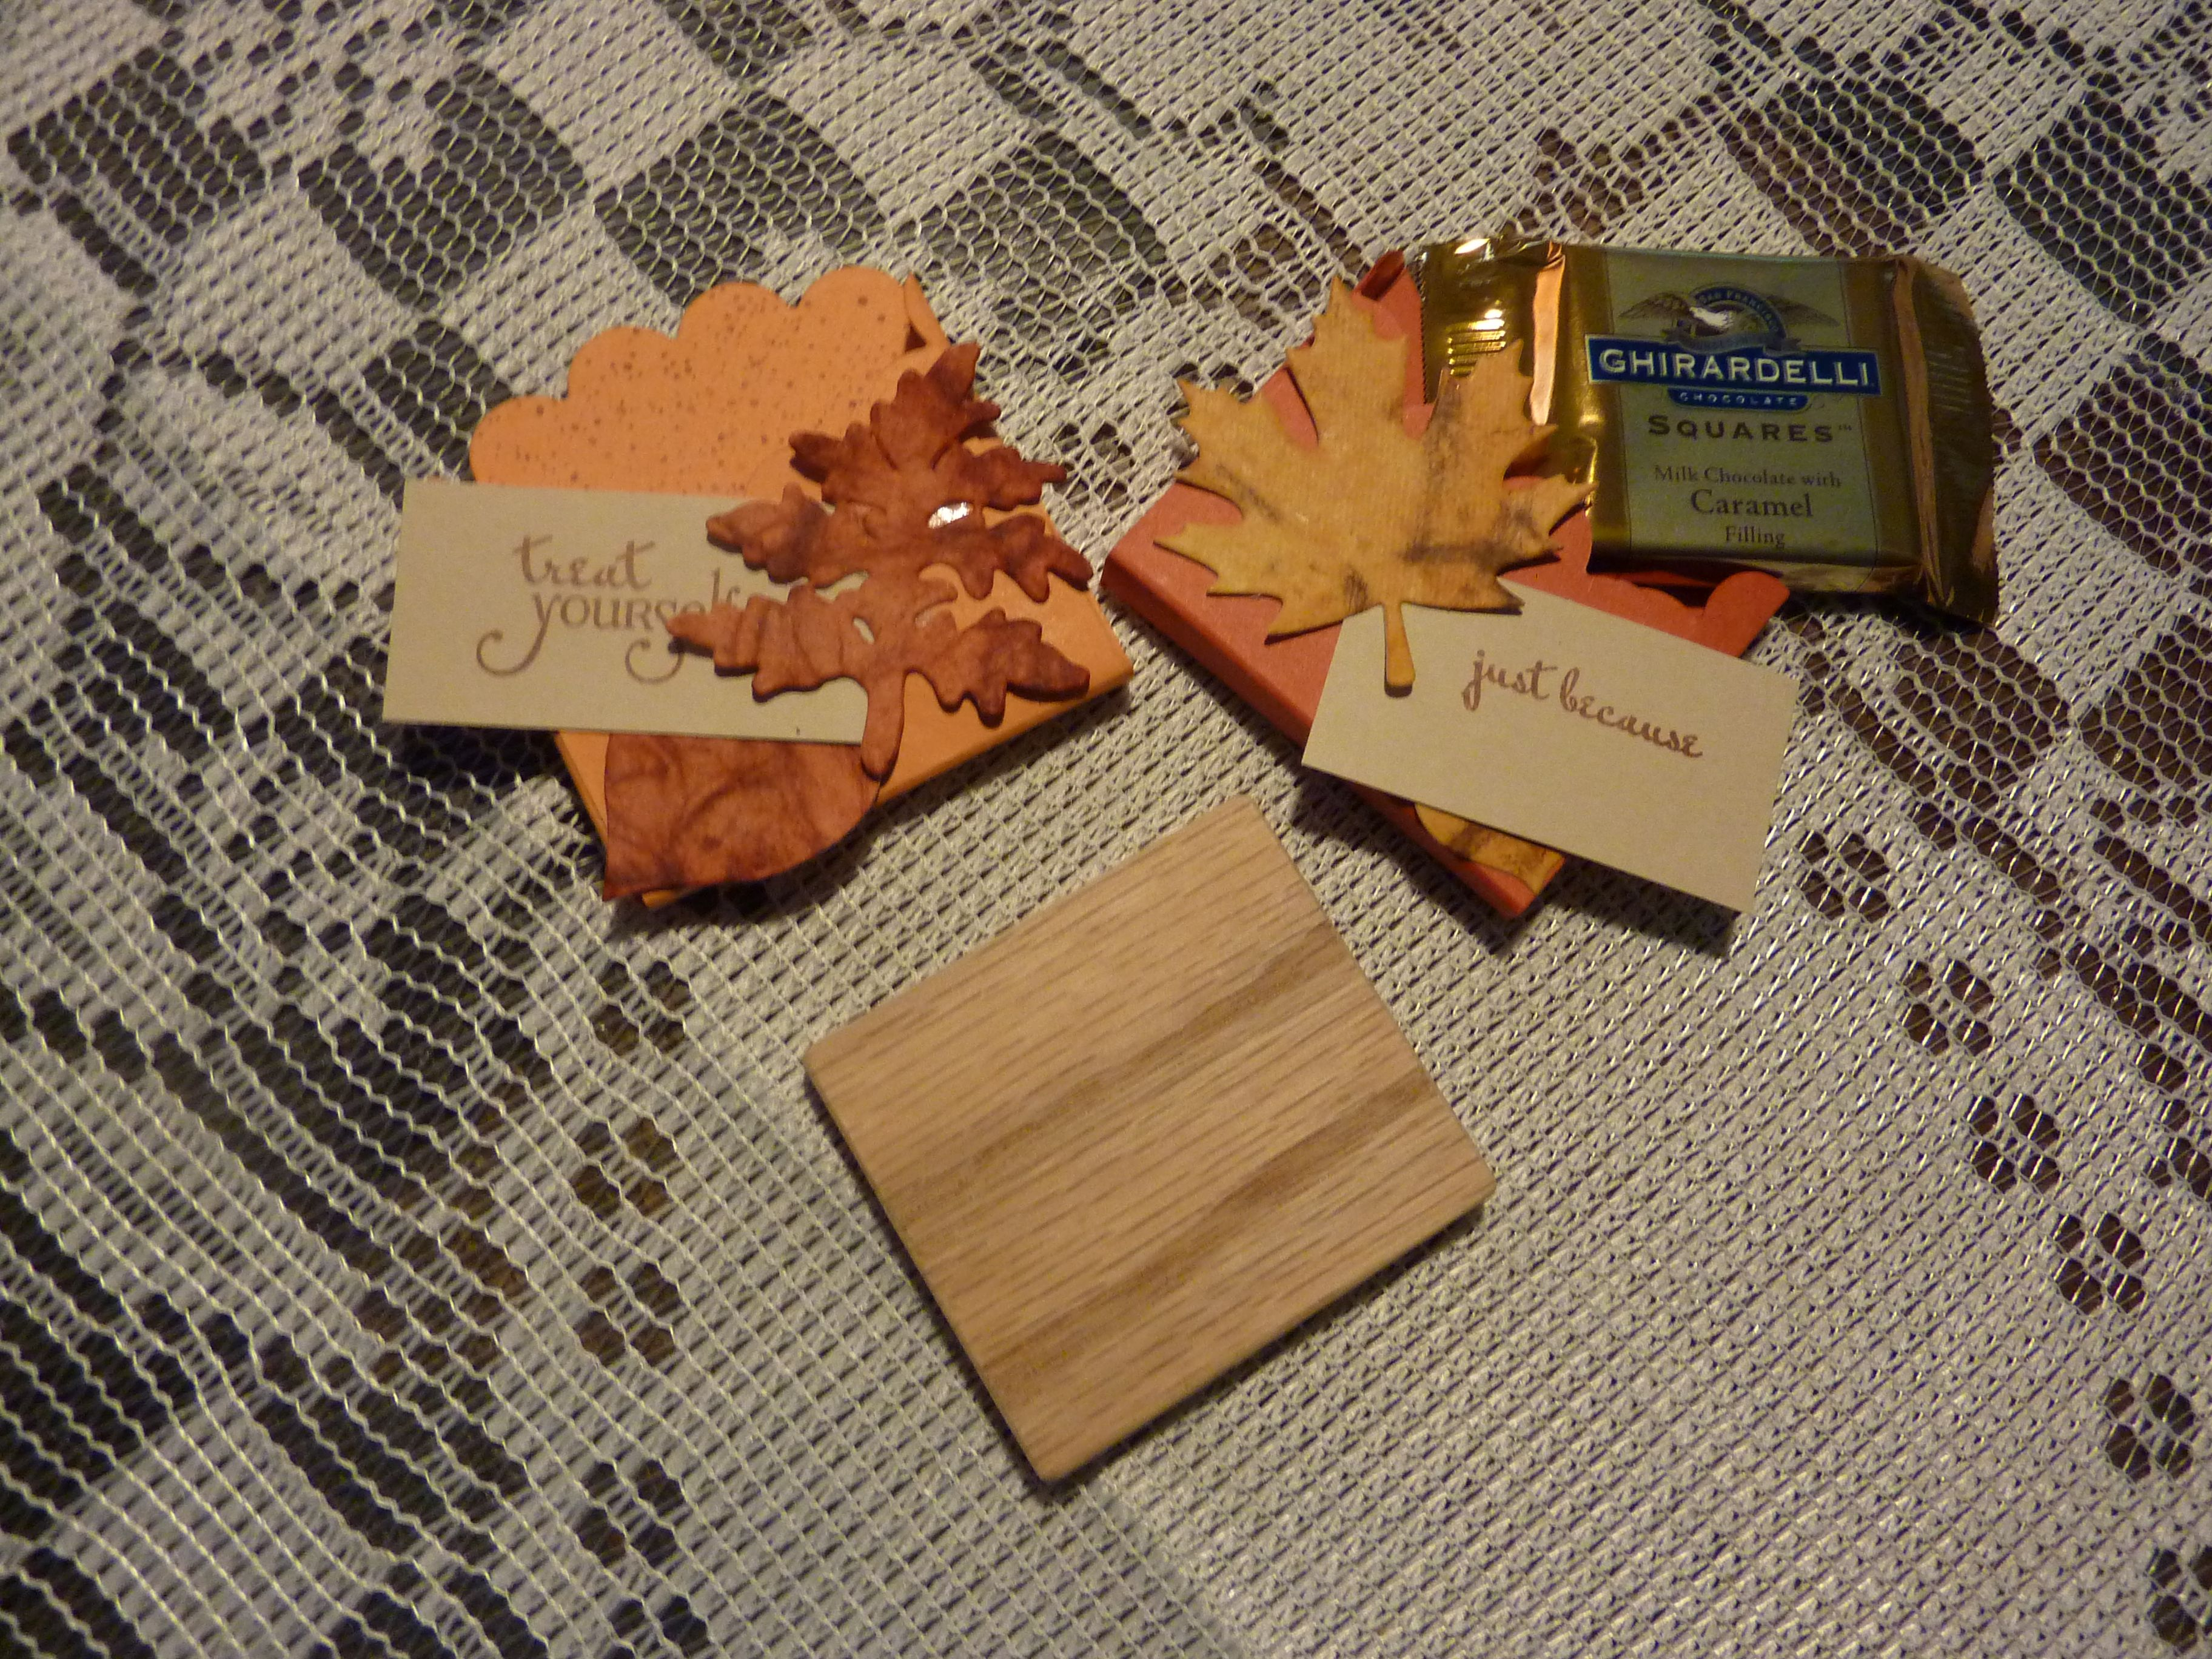 These candy treats holders are just part of the 32 created and stuffed for our Oct '15 pot luck. A special thanks to M.D. for all her folding help.The wood block (Jim's idea)  was a great guide for folding & support for decorating.